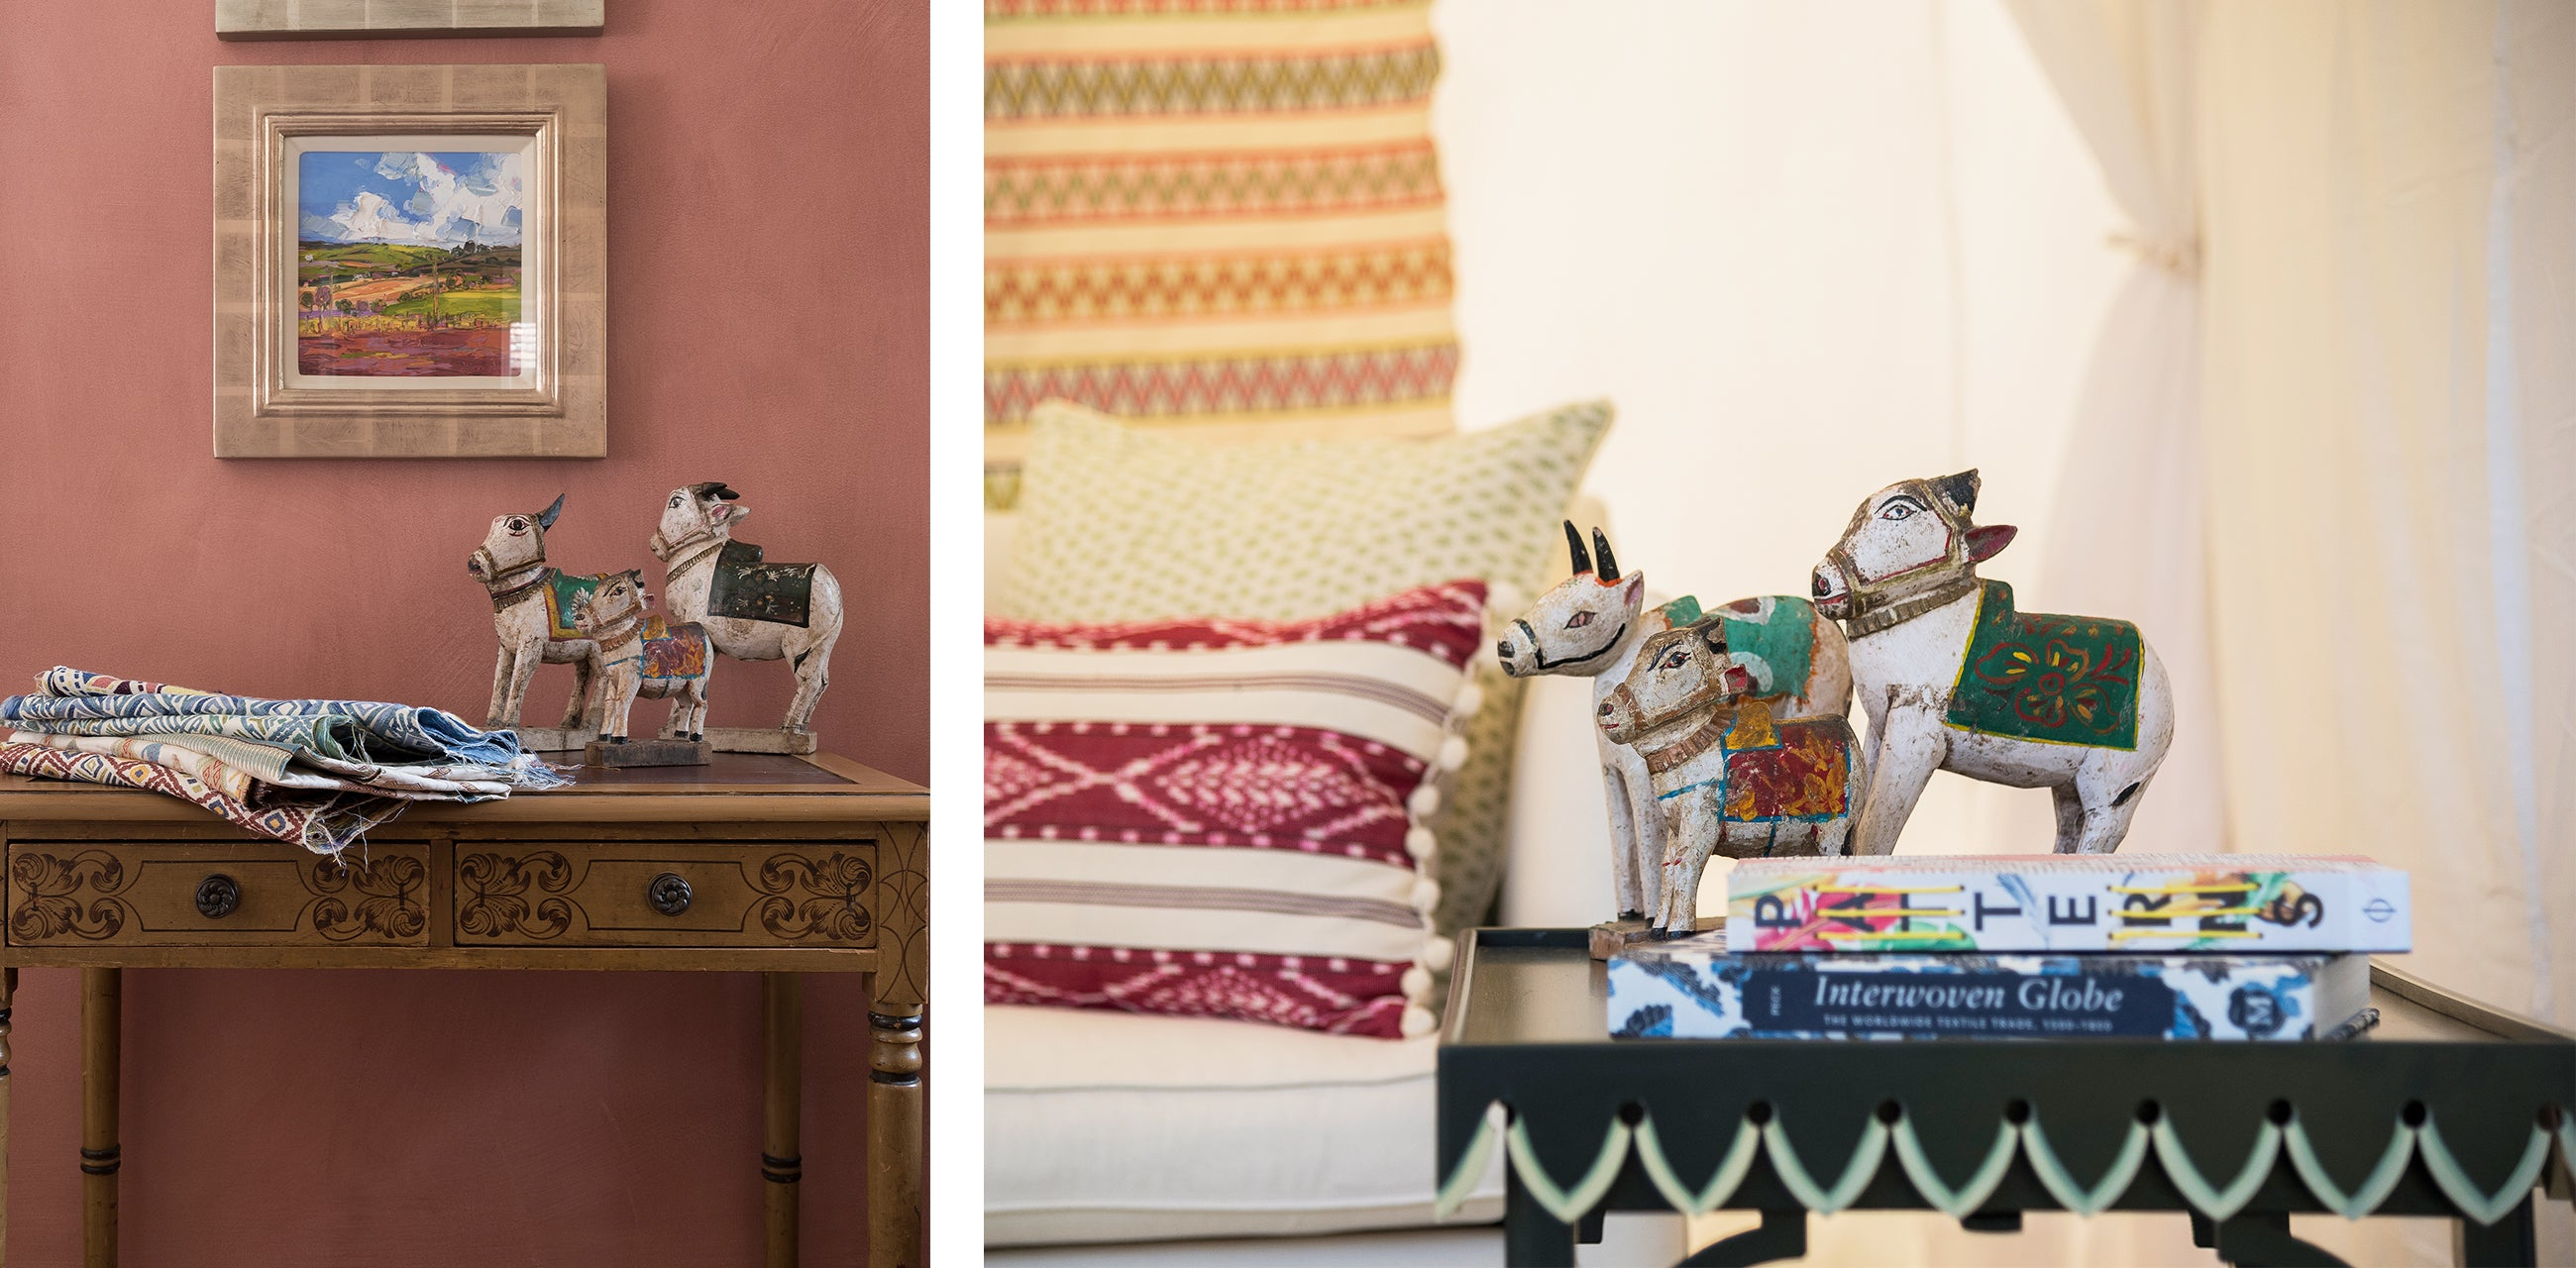 Wicklewood's top tips to styling your shelf and mantlepiece at home, 13 amazing tips to make your shelves and surfaces look amazing